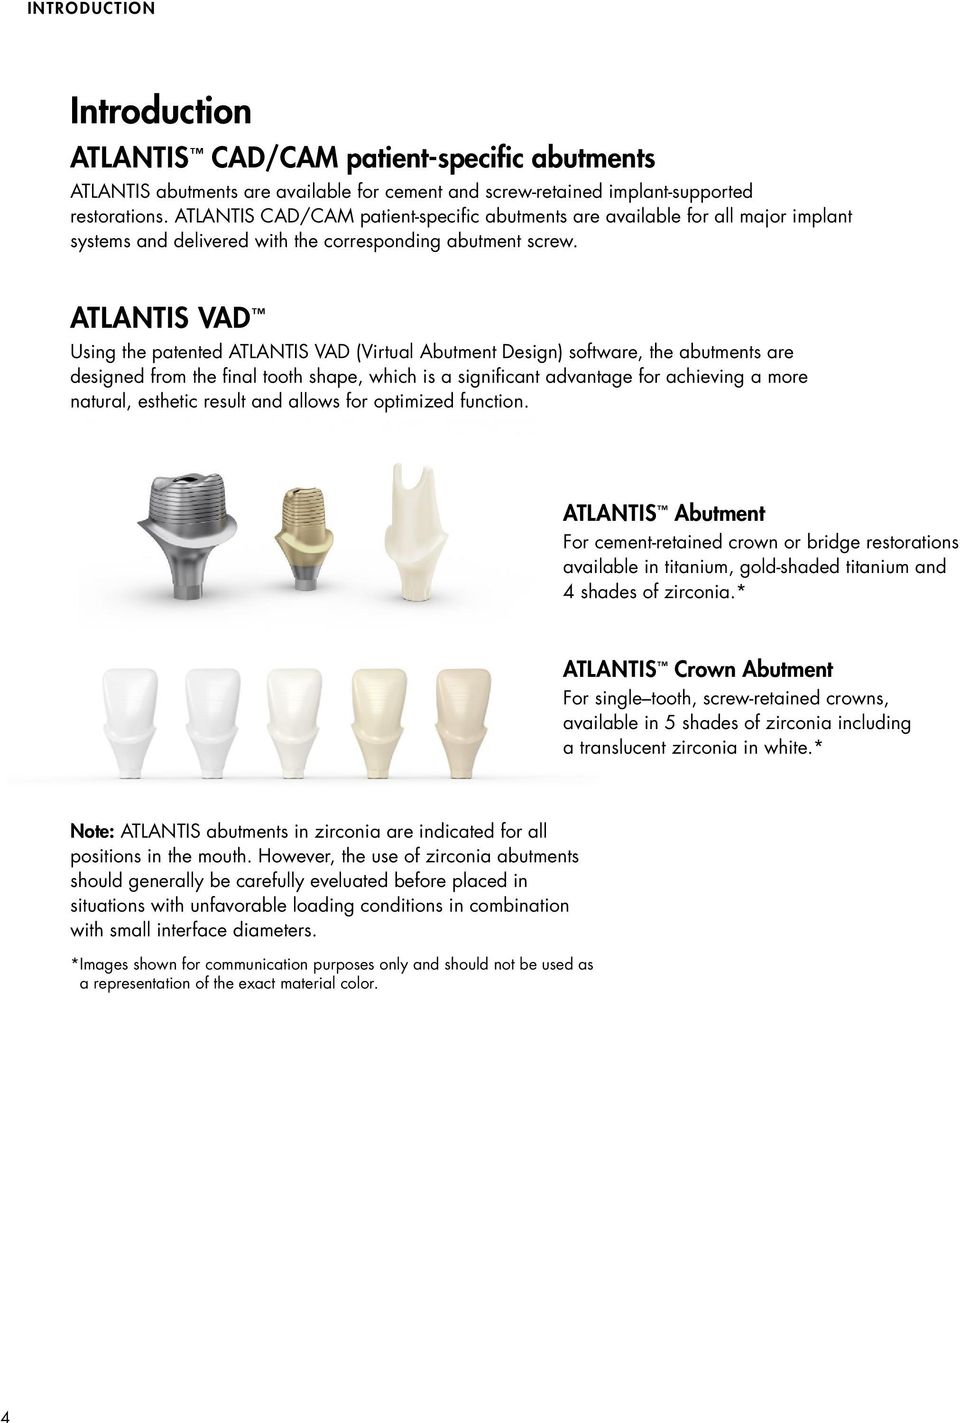 ATLANTIS VAD Using the patented ATLANTIS VAD (Virtual Abutment Design) software, the abutments are designed from the final tooth shape, which is a significant advantage for achieving a more natural,